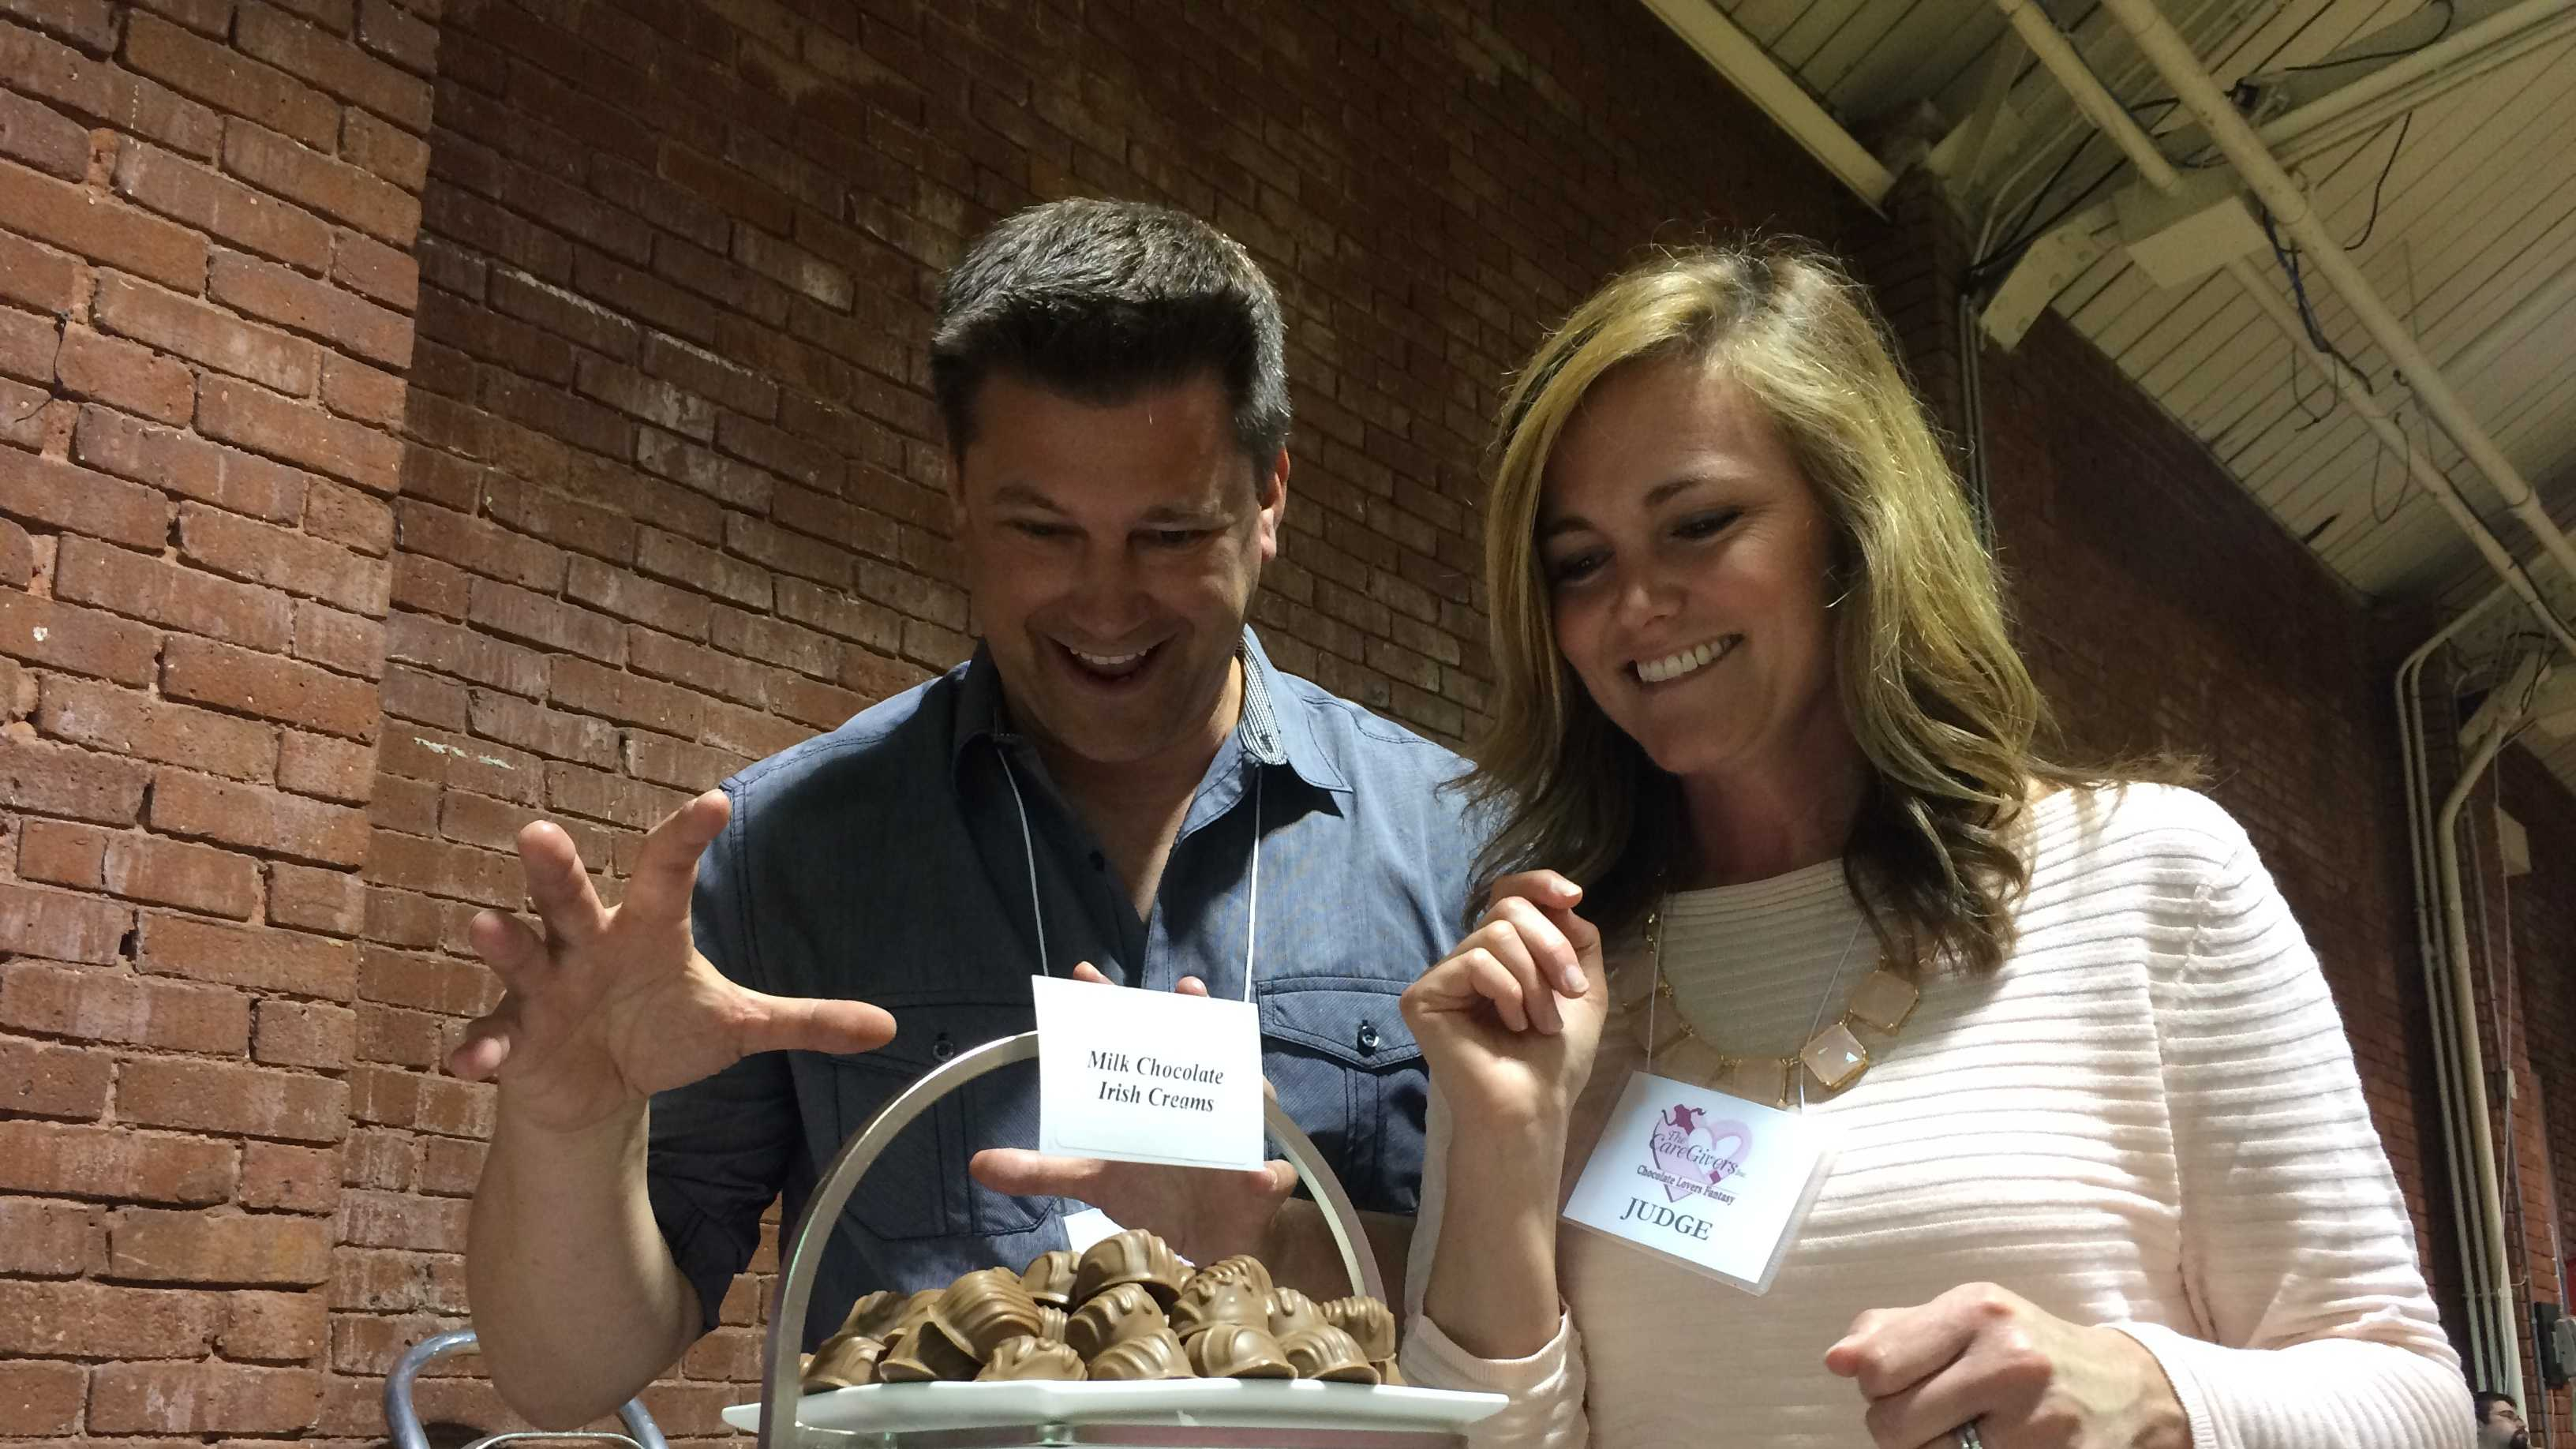 Chocolate enthusiasts gathered in Manchester Sunday for a sweet cause. The 13th annual Chocolate Lovers Fantasy drew hundreds of people to the Radisson Hotel.